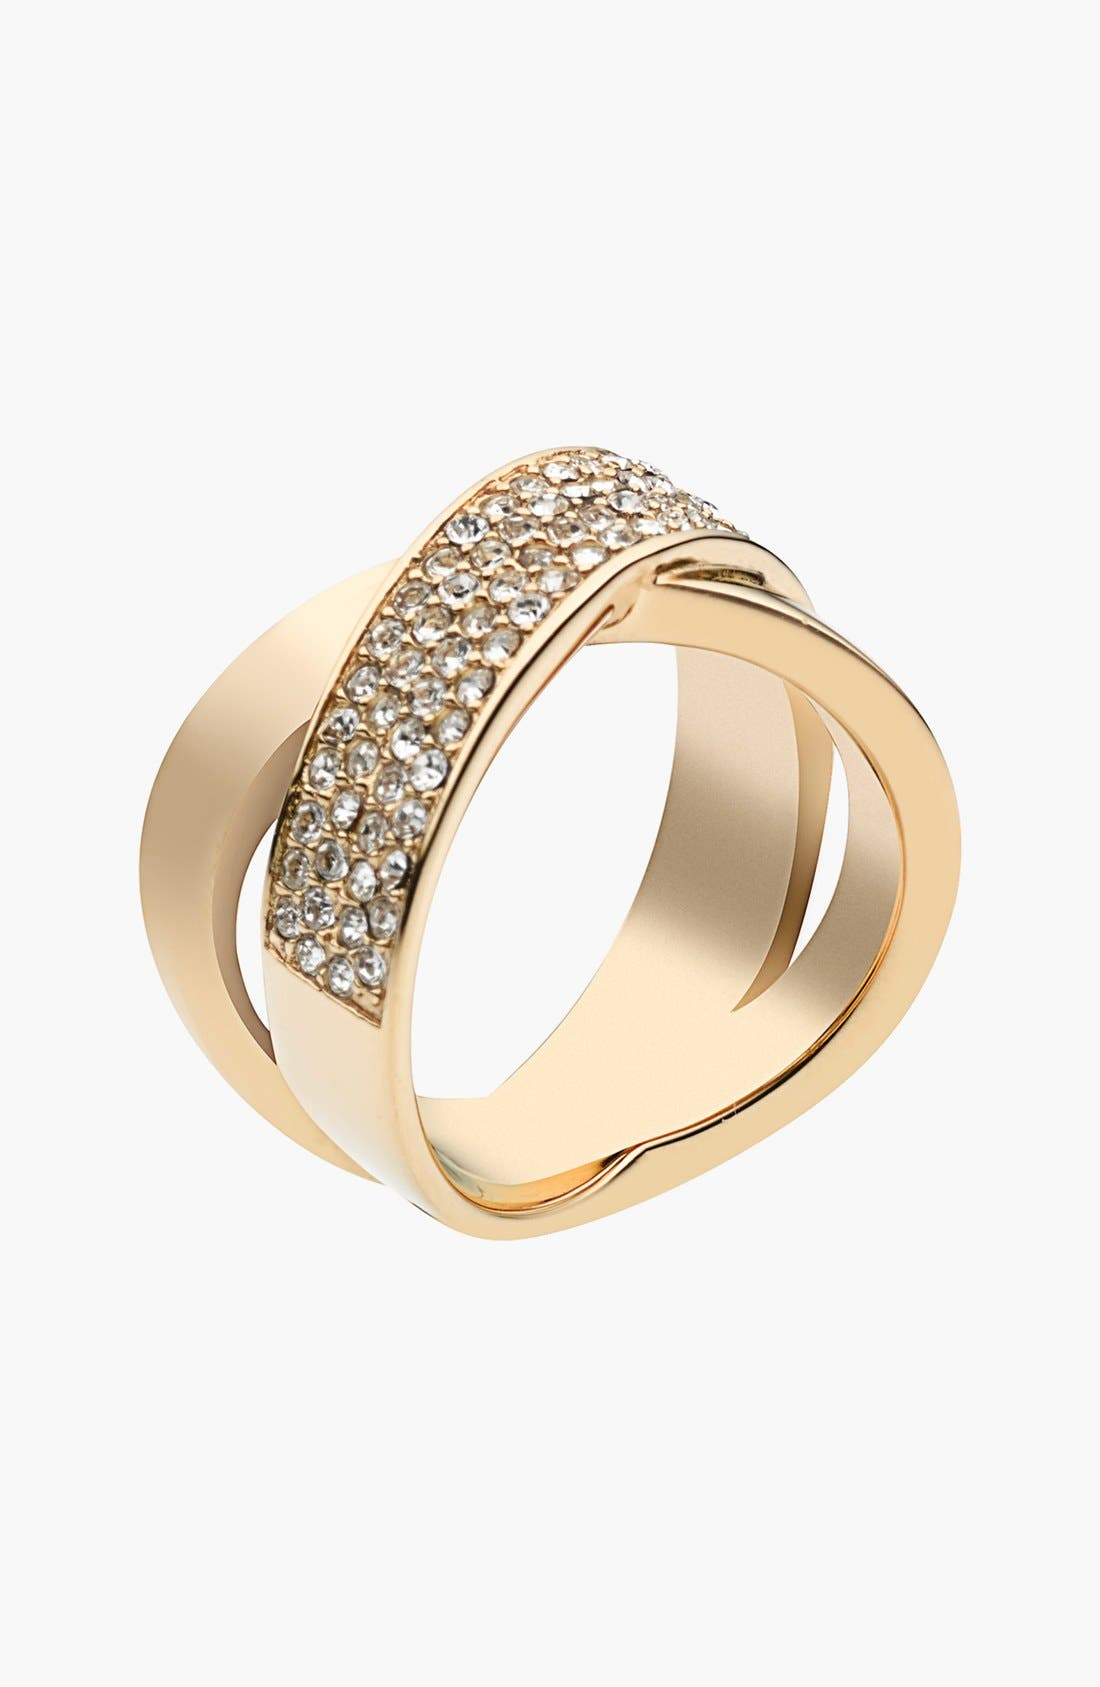 Main Image - Michael Kors 'Brilliance' Crisscross Ring